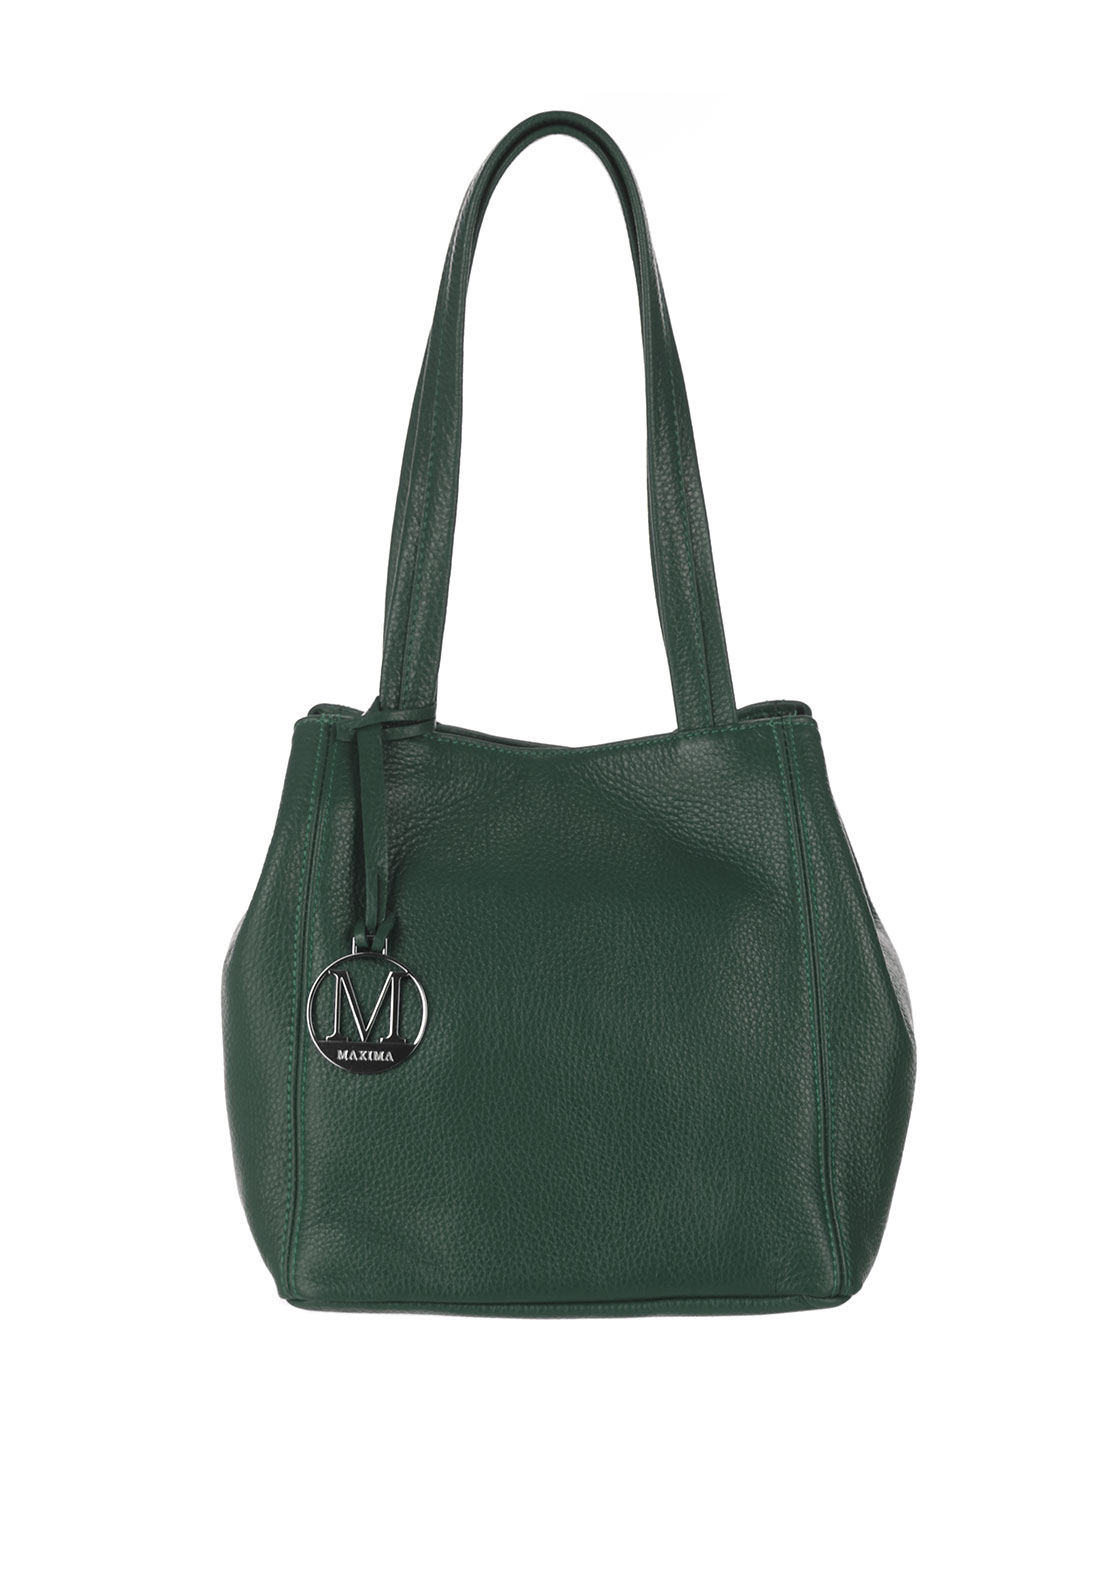 Maxima Leather Bucket Bag, Green